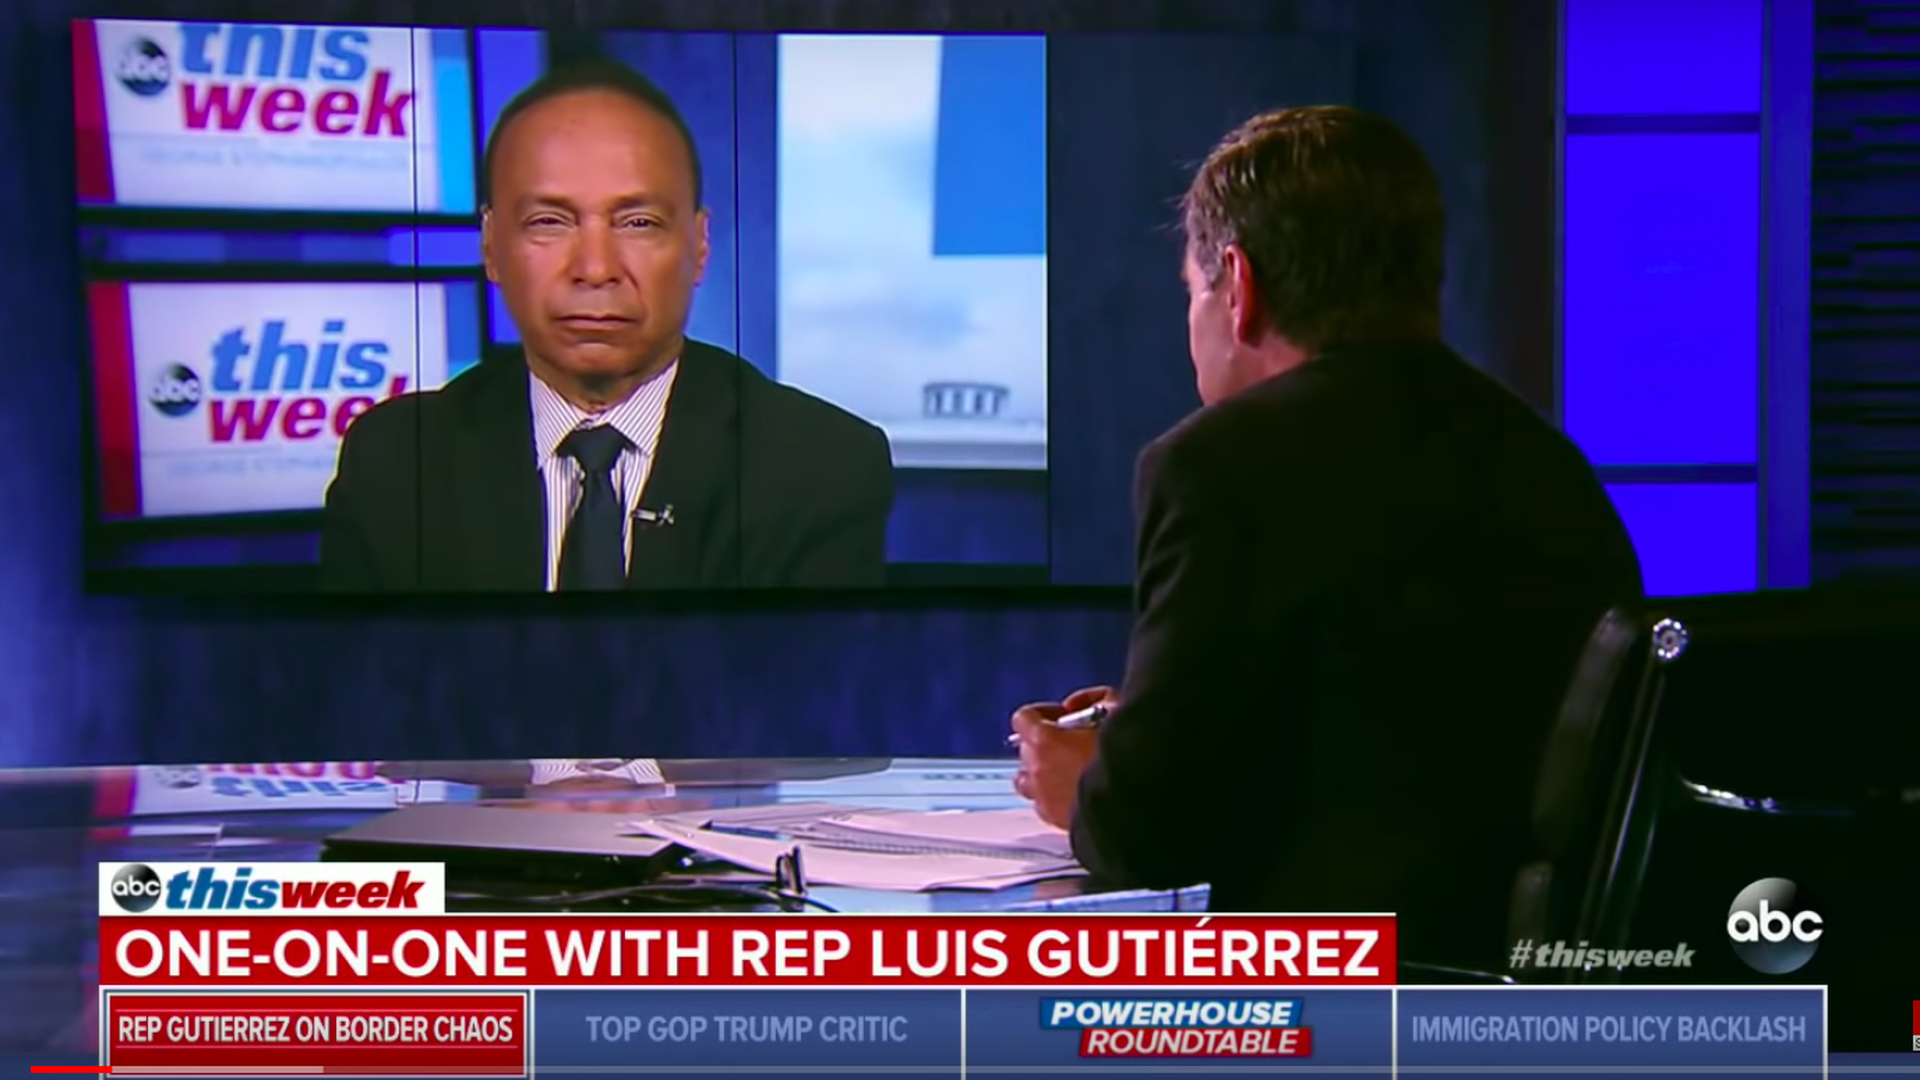 Rep. Luis Gutierrez (D-IL) on ABC's This Week